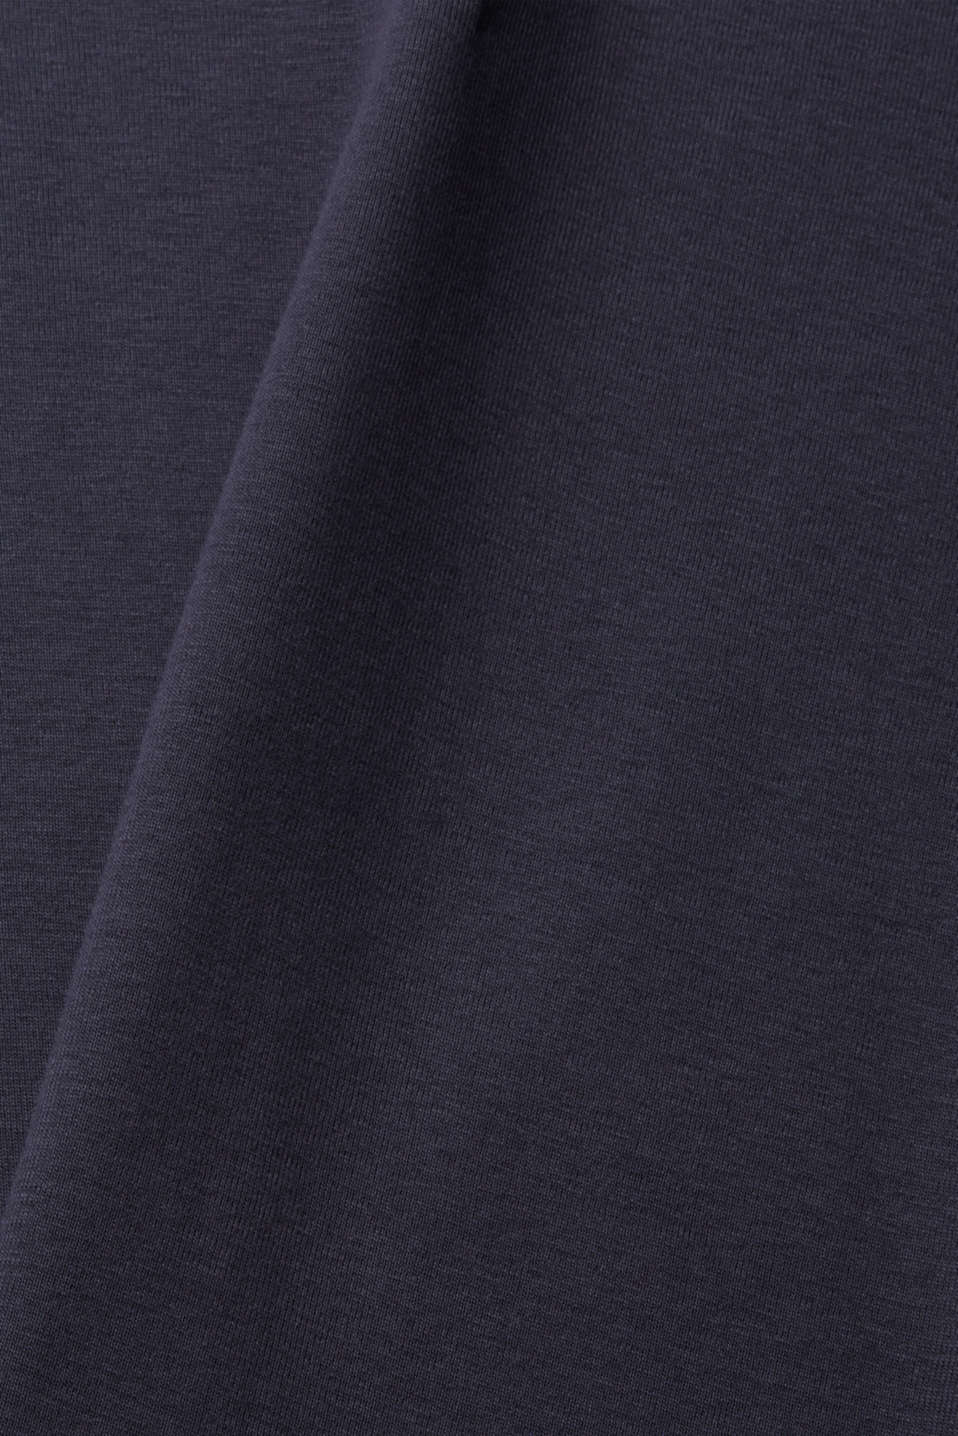 Ribbed jersey top made of 100% cotton, NAVY, detail image number 4